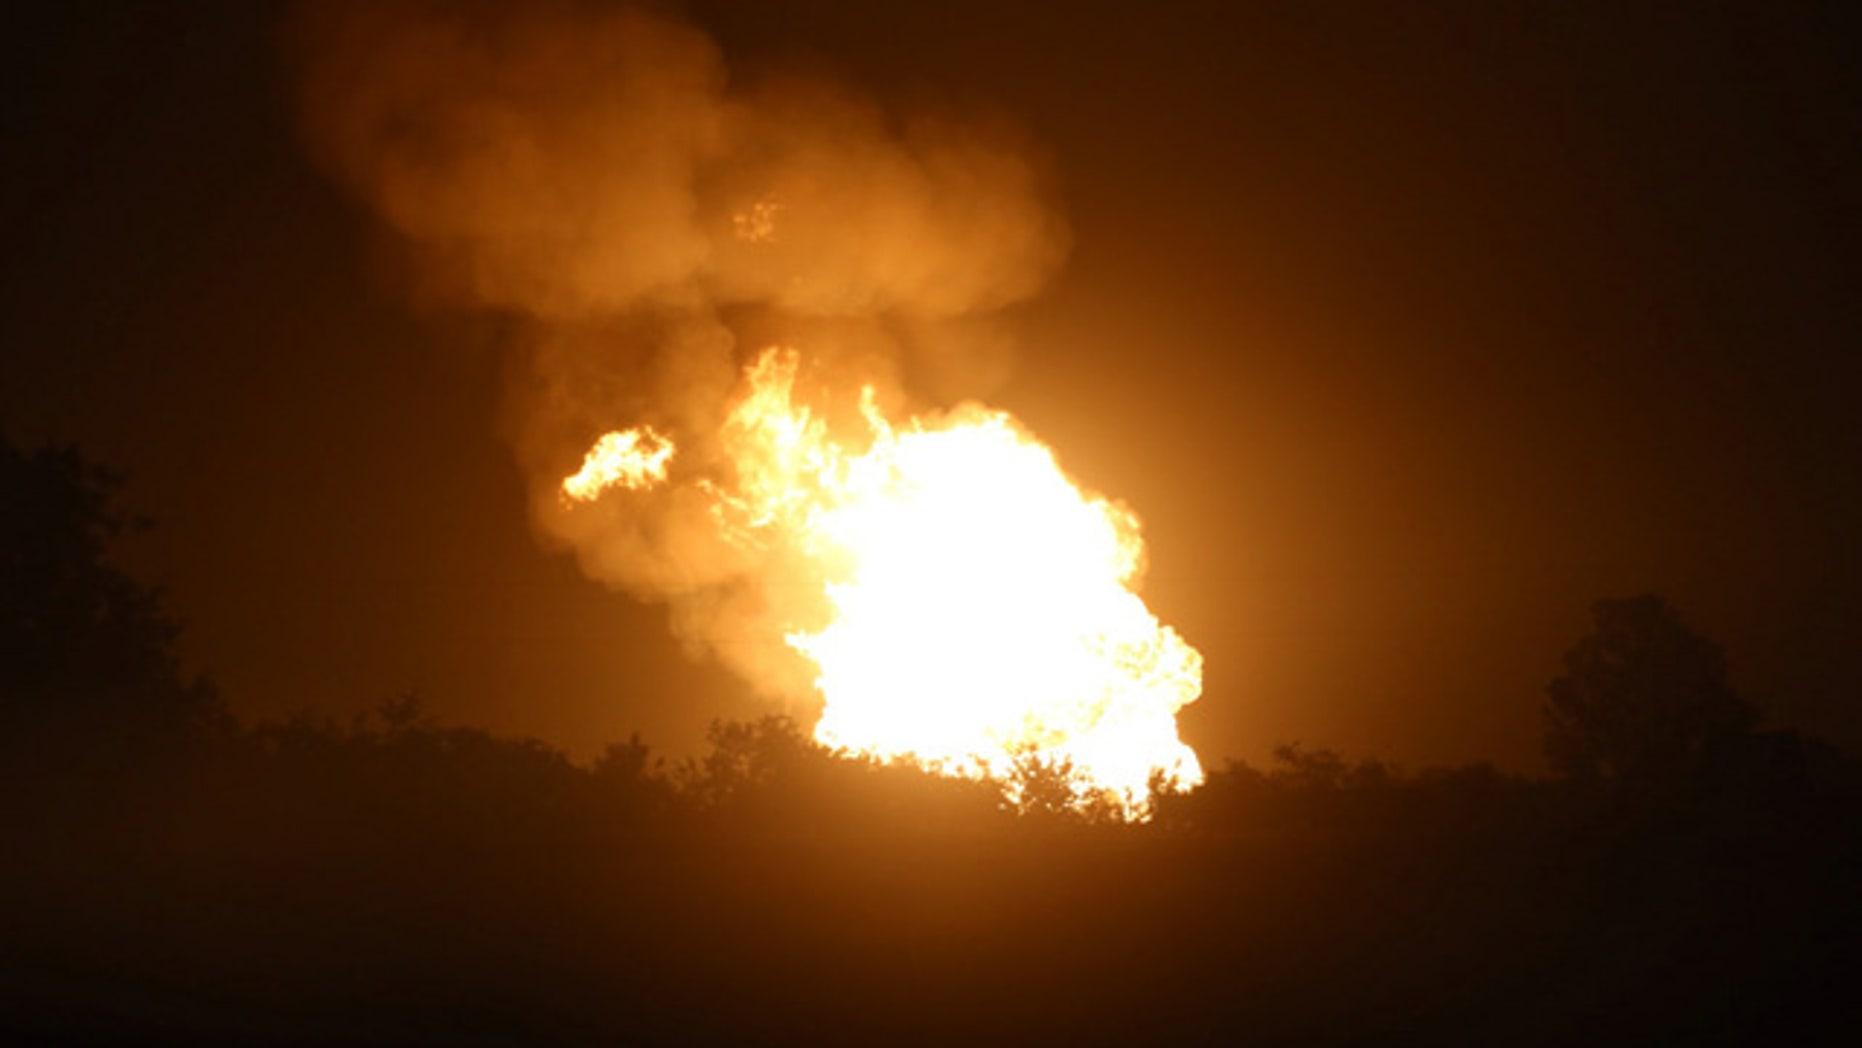 June 14, 2015: Fire after a pipeline explosion in rural DeWitt County, Texas, illuminates the horizon. Authorities said no one was injured after a natural gas pipeline rupture sparked a massive fire that prompted home evacuations in South Texas. (Richard Hoang/The Victoria Advocate via AP)